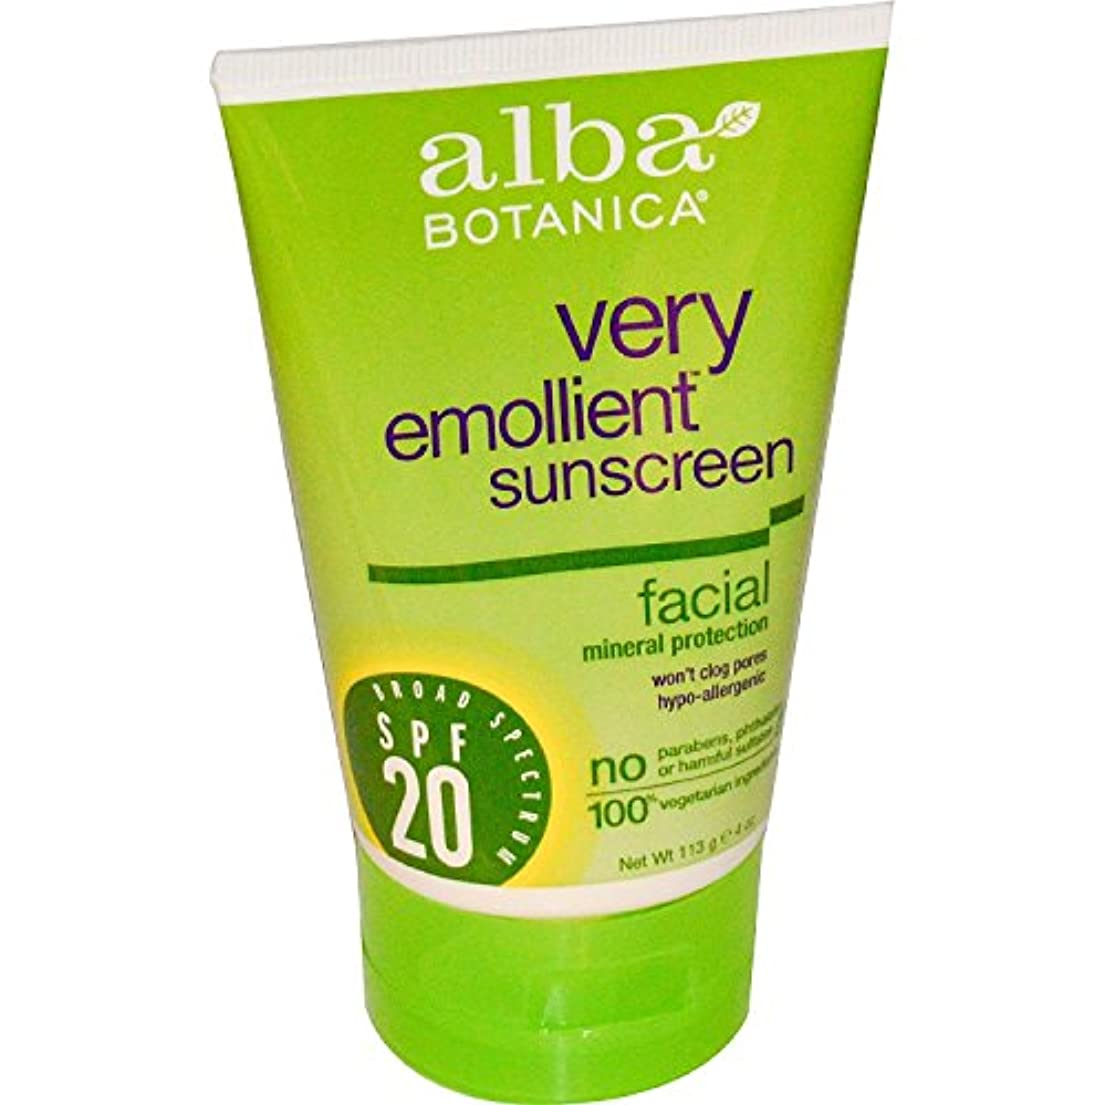 改修する主張する売るNatural Sunblock - Very Emollient - Mineral SPF 20 - Facial - 4 oz by Alba Botanica